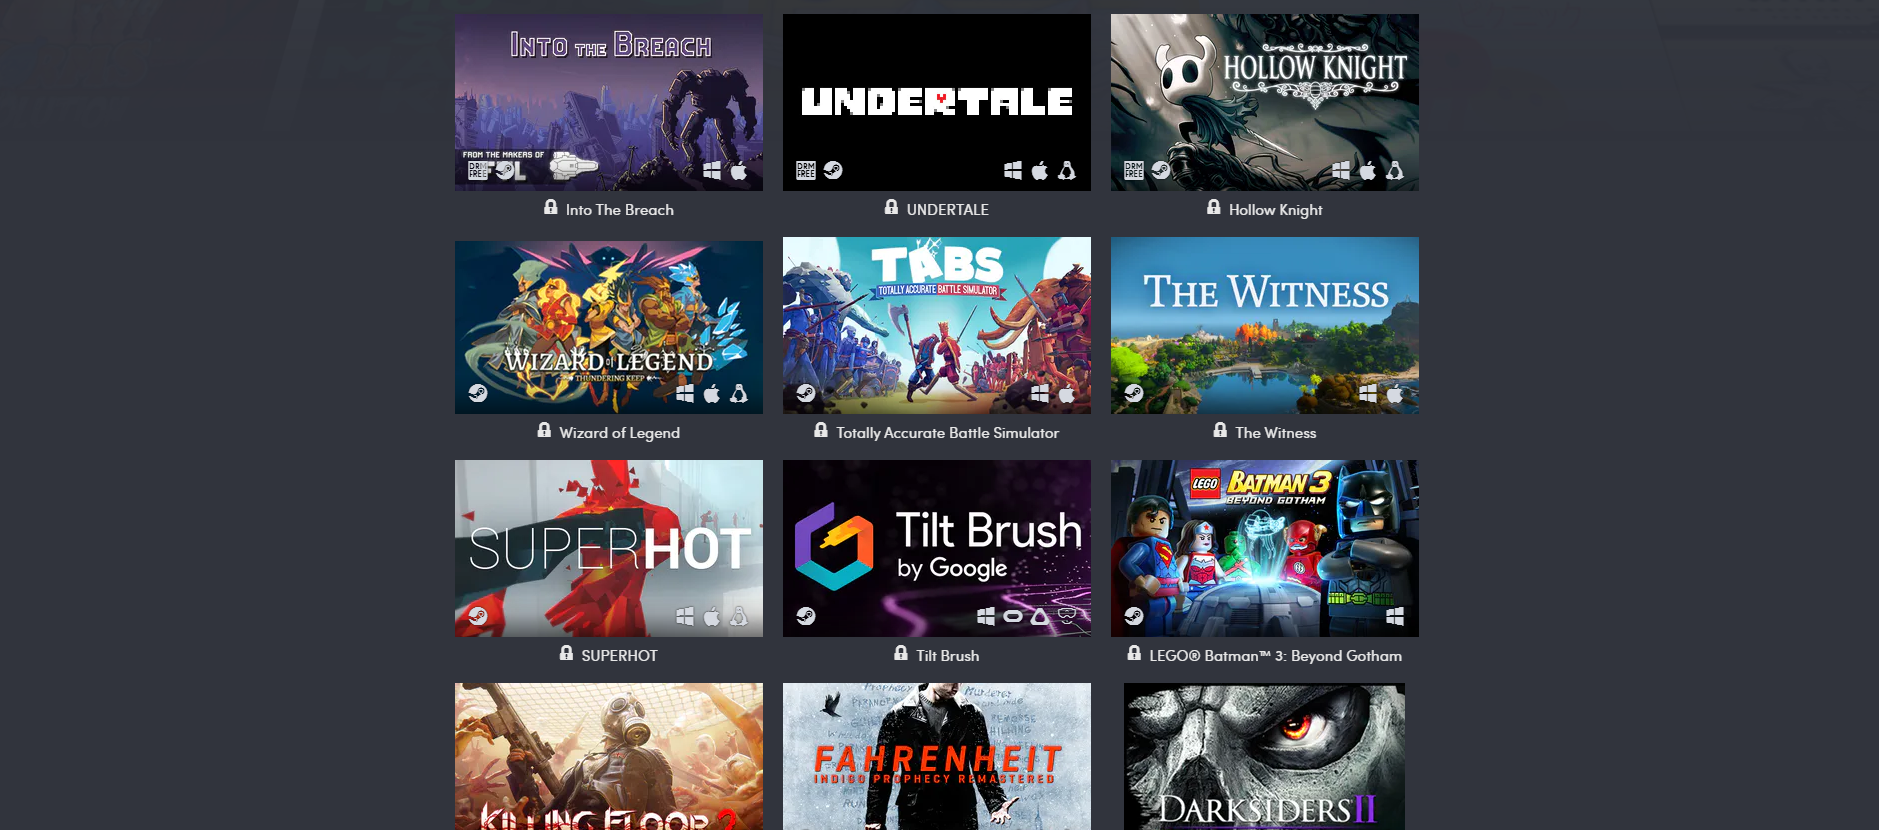 A screenshot from the Humble Conquer COVID-19 Bundle page, including game titles Into the Breach, Undertale, Hollow Knight, Wizard of Legends, Totally Accurate Battle Simulator, The Witness, Superhot, Tilt Brush, Batman 3: Beyond Gothen, Killing Floor, Fahrenheit Indigo Prophecy Remastered, and Darksiders II